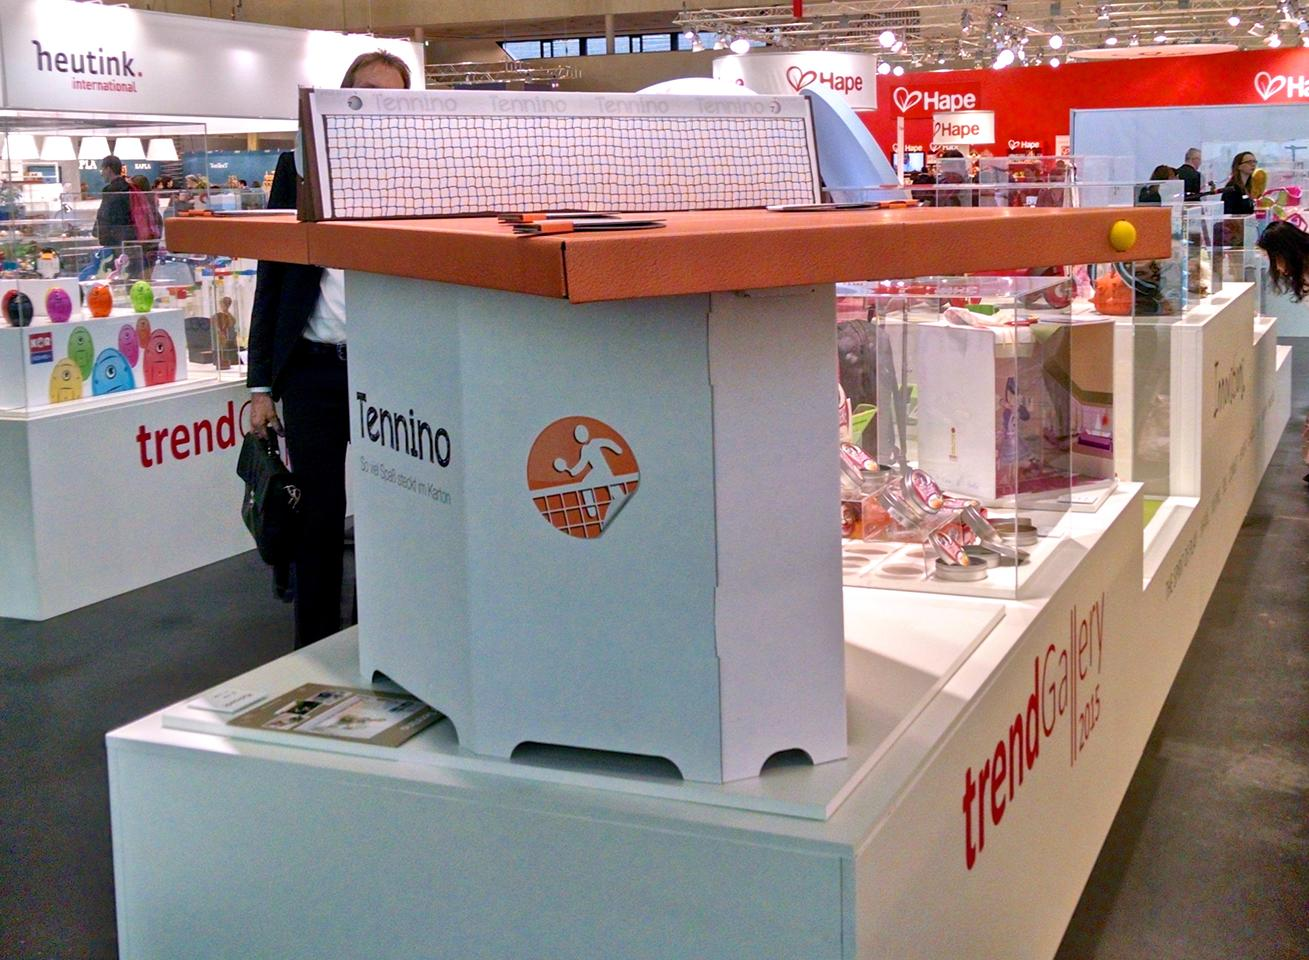 Tennino on display at the 2015 Nuremberg Toy Fair Trend Gallery (Photo: C.C. Weiss/Gizmag)